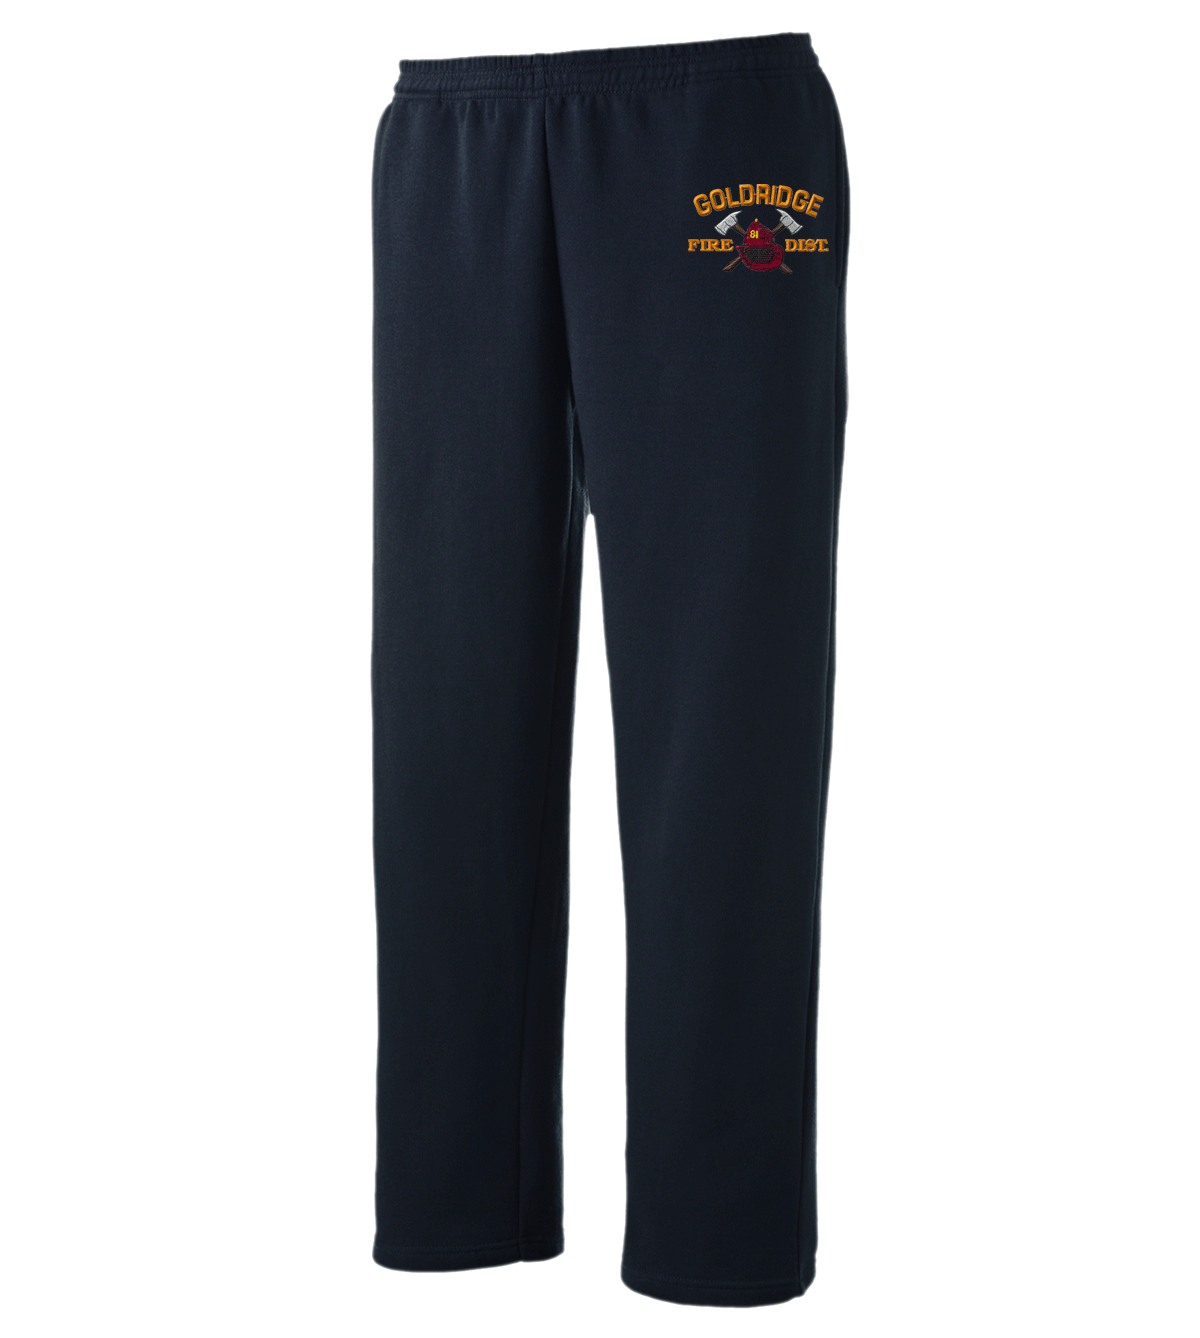 Gold Ridge Fire Sweatpants